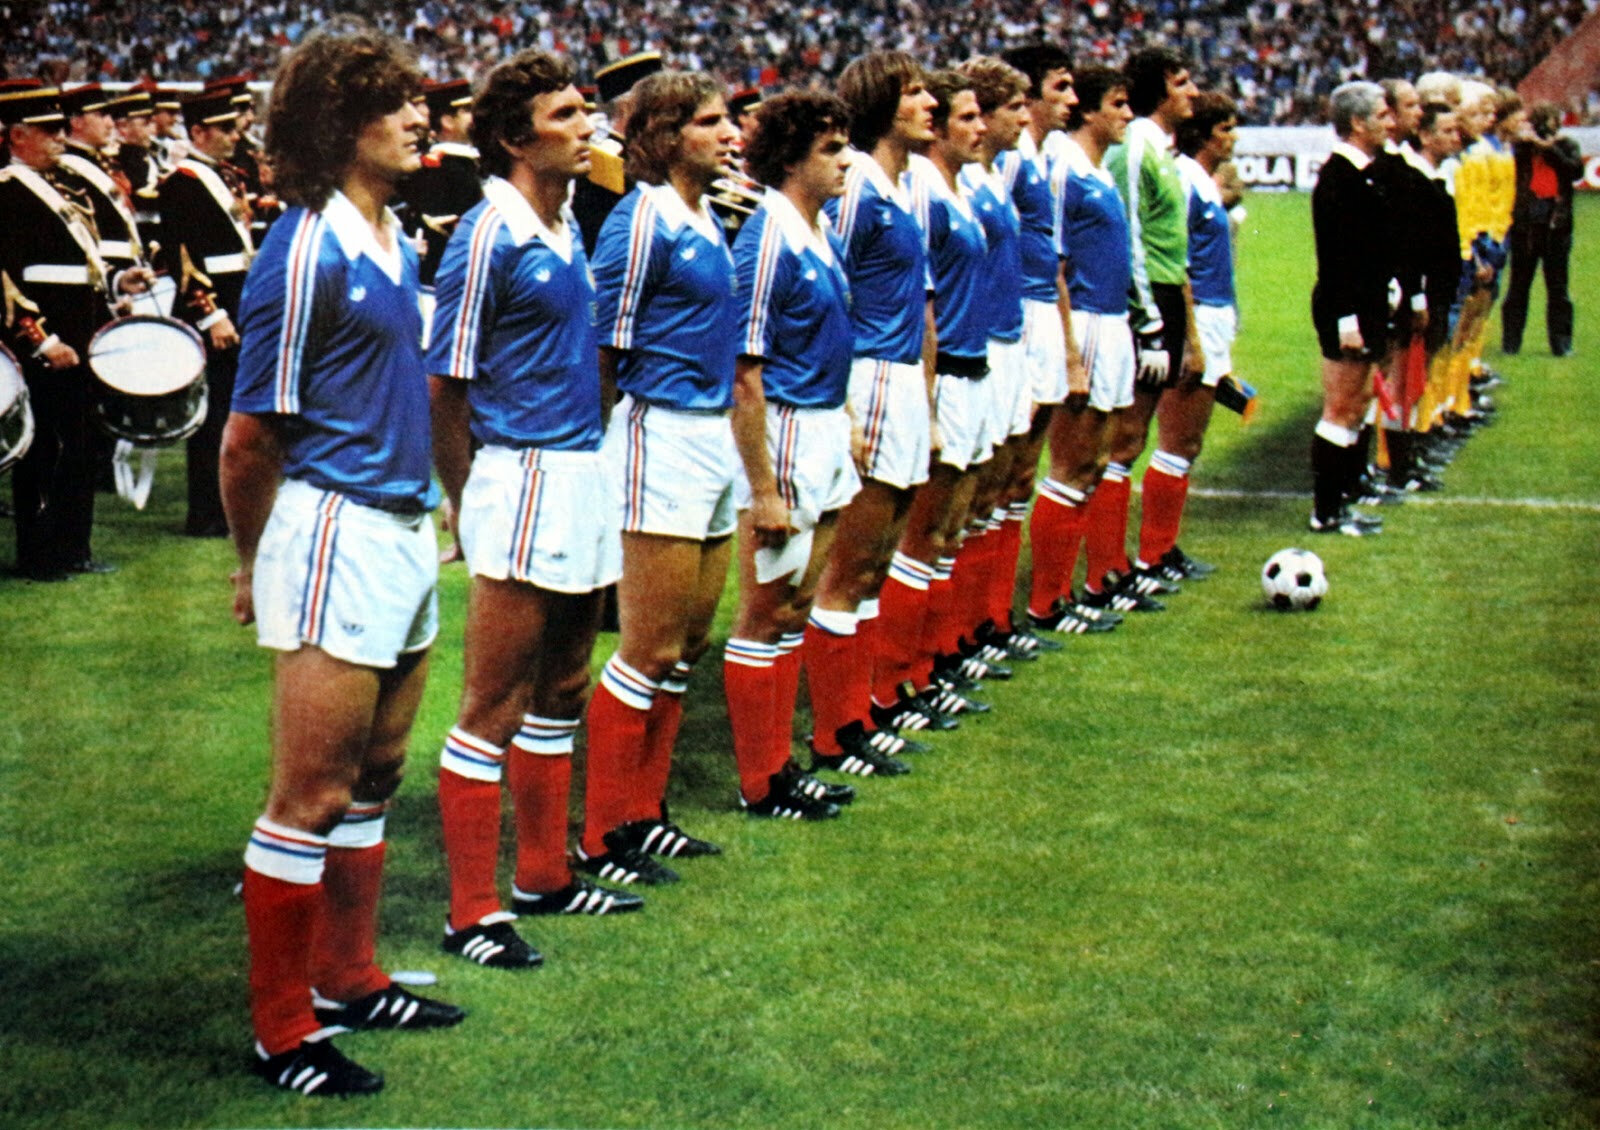 1er septembre 1978 FRANCE-SUÈDE ... MATCH QUALIFICATIF POUR LE CHAMPIONNAT D'EUROPE DES NATIONS